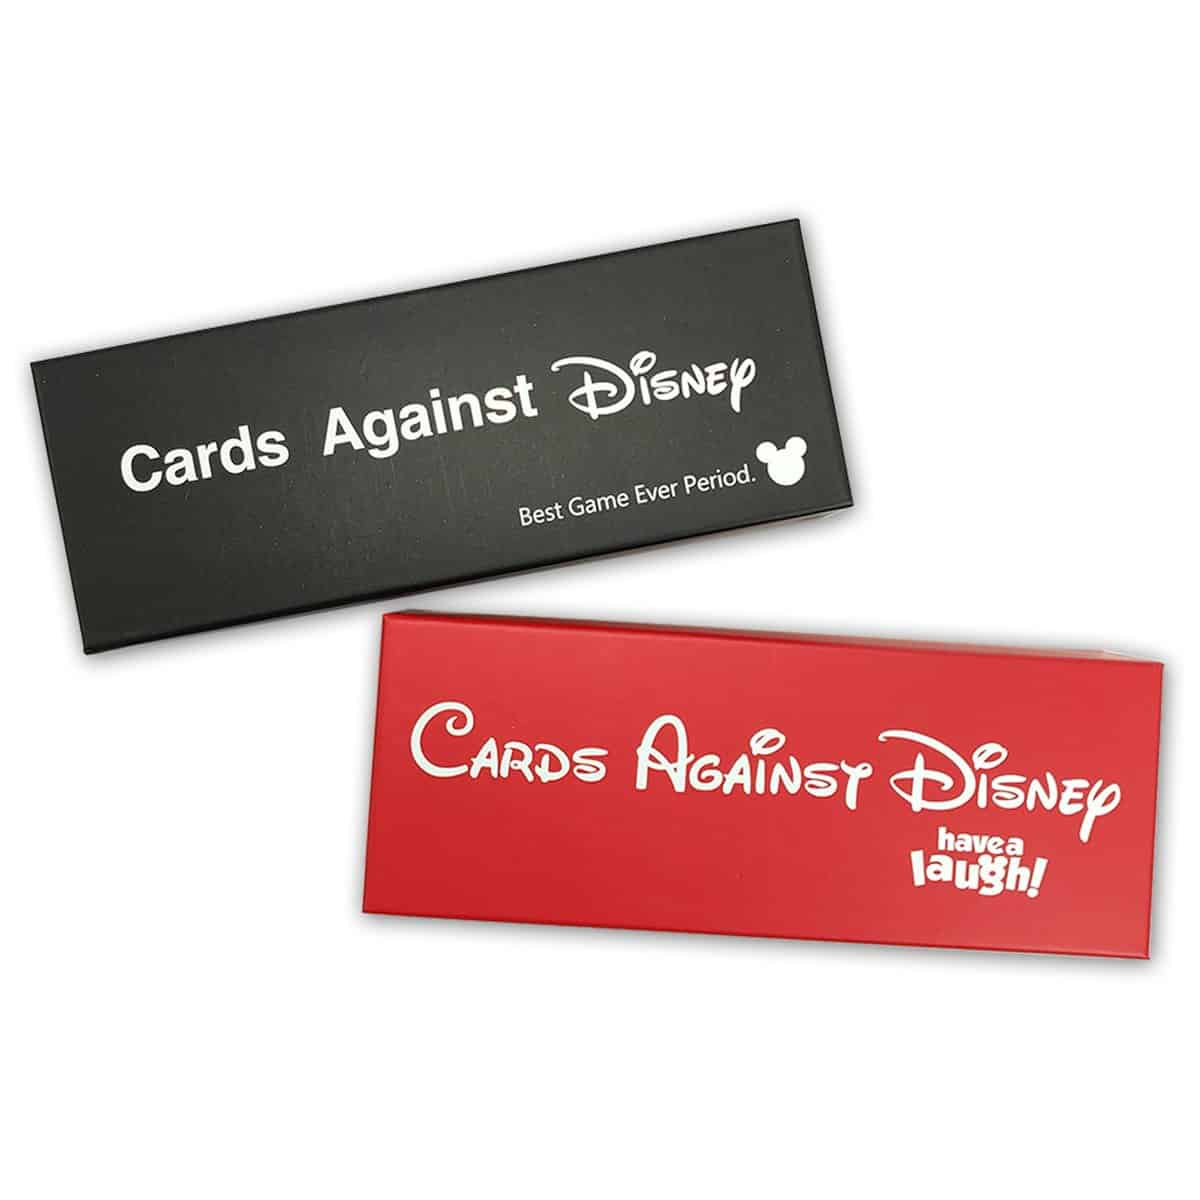 Cards Against Disney - Both Color Boxes